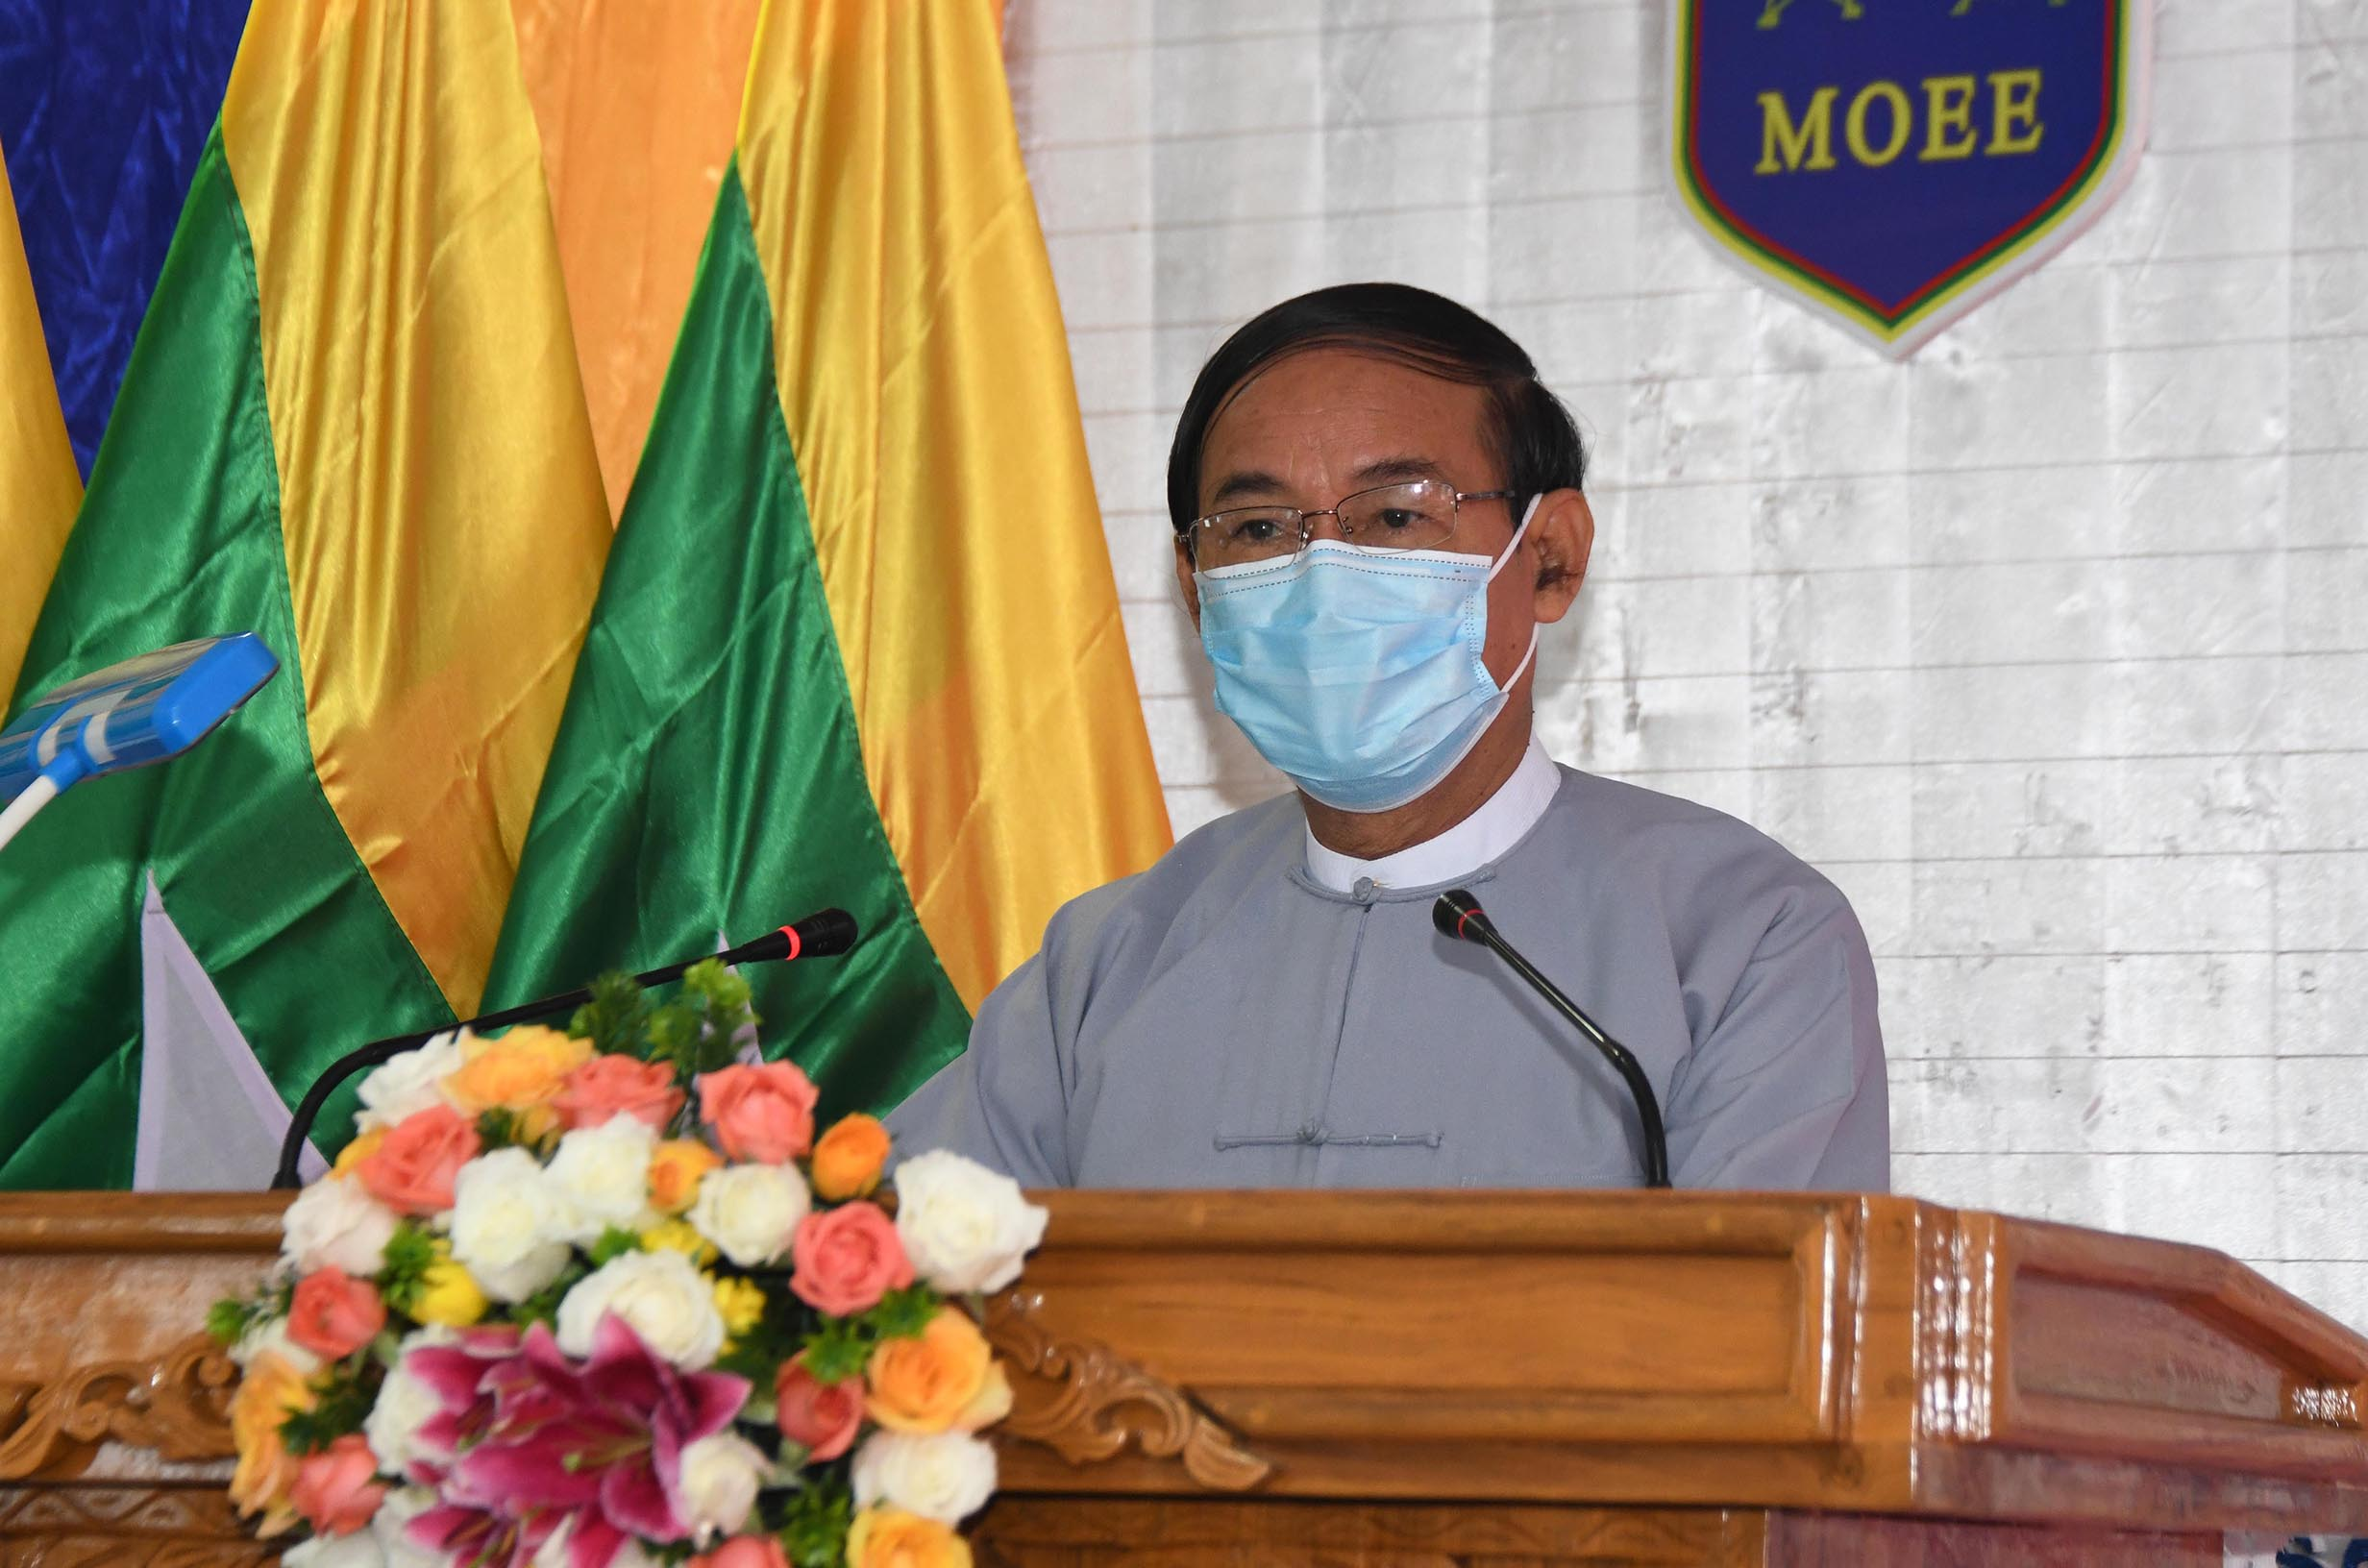 President U Win Myint delivers speech at the ceremony to commission Main National Grid in Shan State (East) on 8 August 2020. Photo: MNA